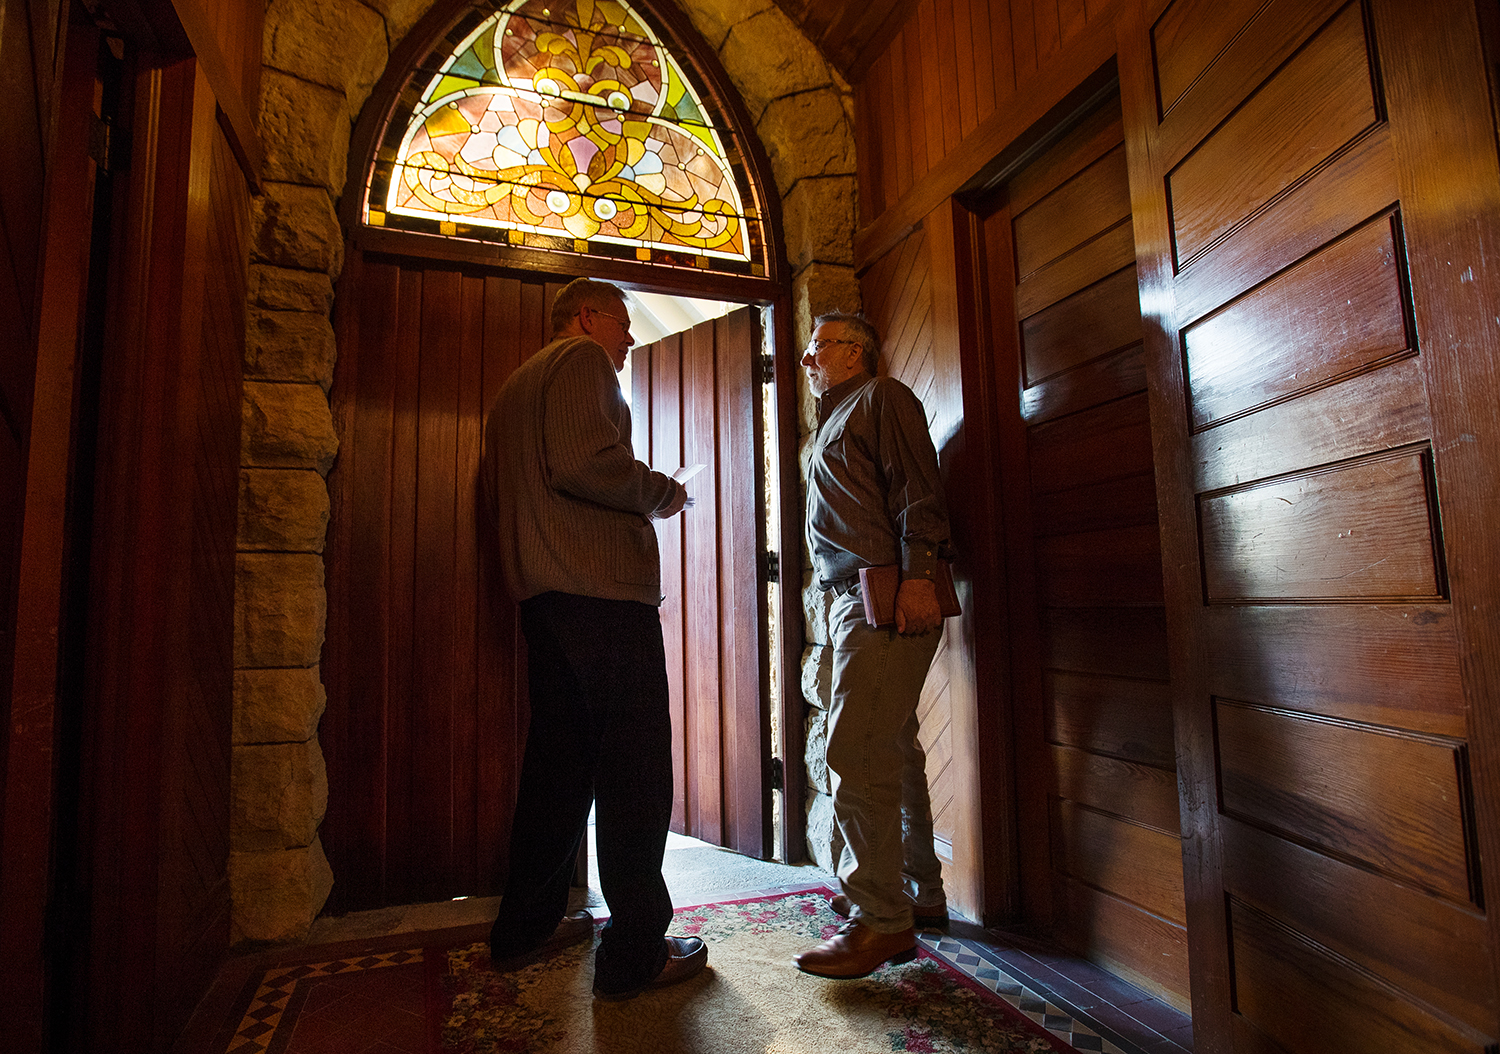 Lacy Hall, left, and Scott Payne visit while awaiting guests for the sunrise Easter service at St. John the Baptist Chapel Sunday, April 21, 2019. Payne preached for the morning service. [Ted Schurter/The State Journal-Register]